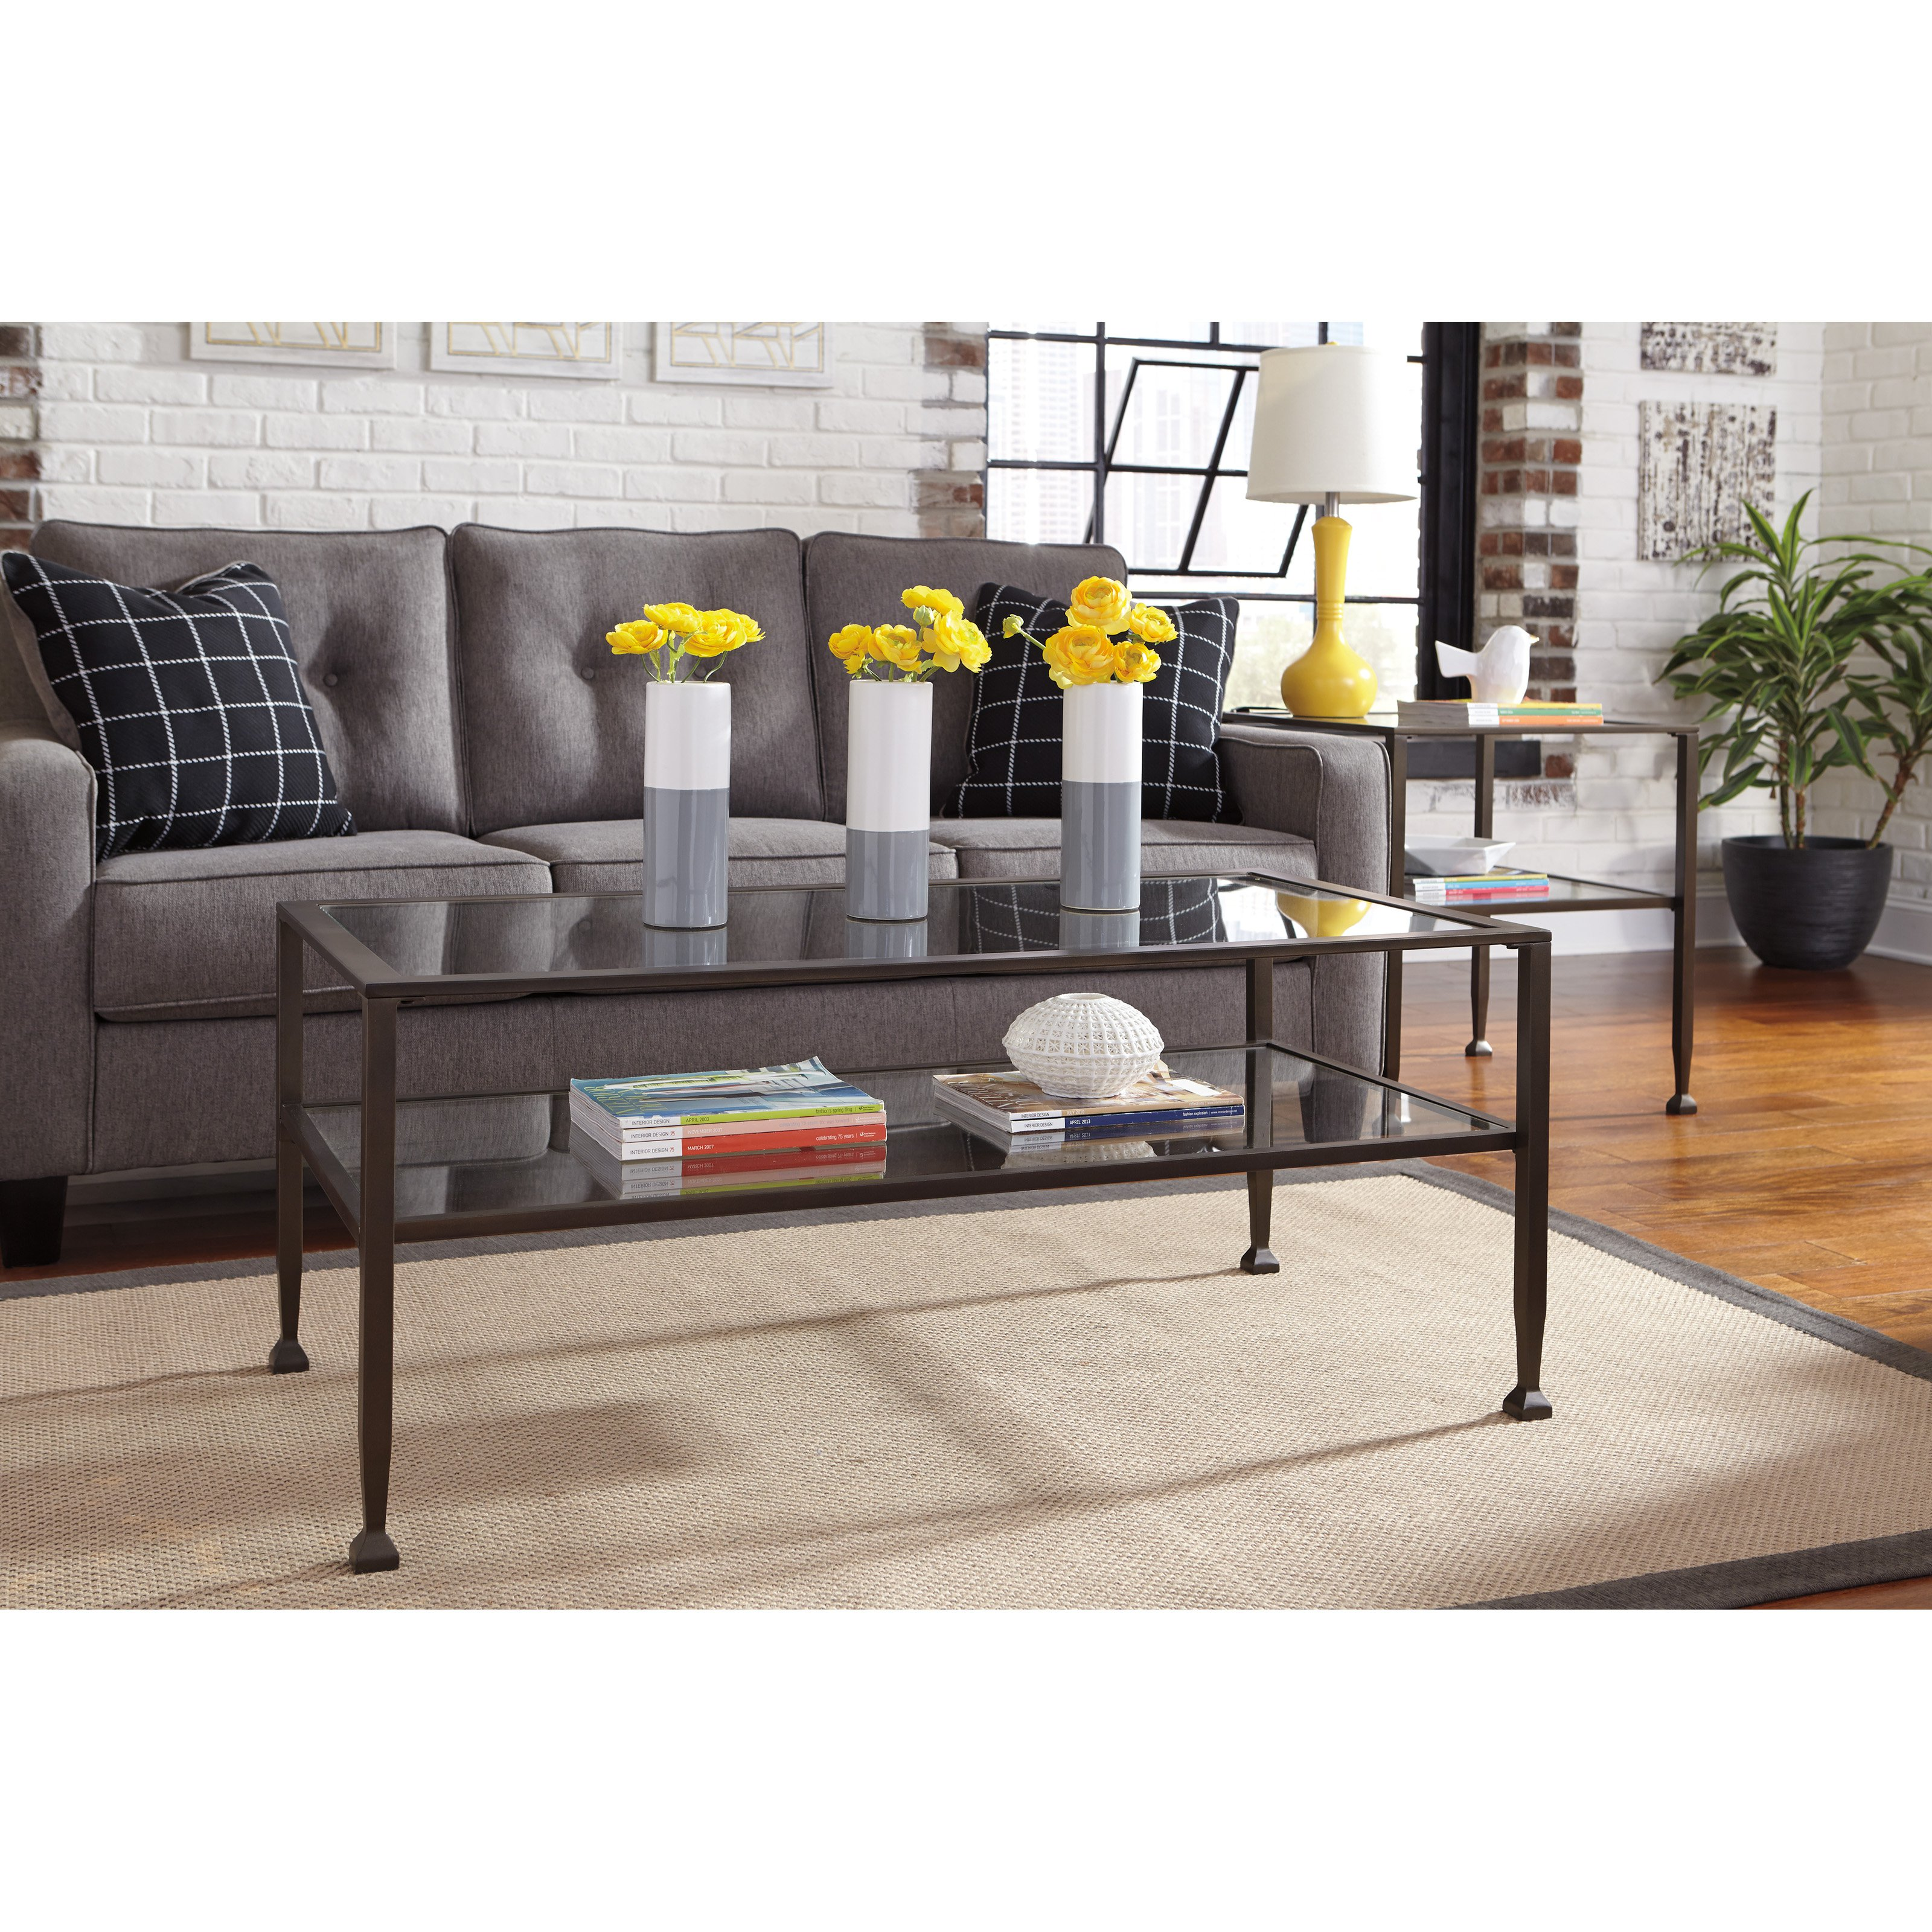 Signature Design by Ashley Tivion Rectangular Cocktail Table by Ashley Furniture